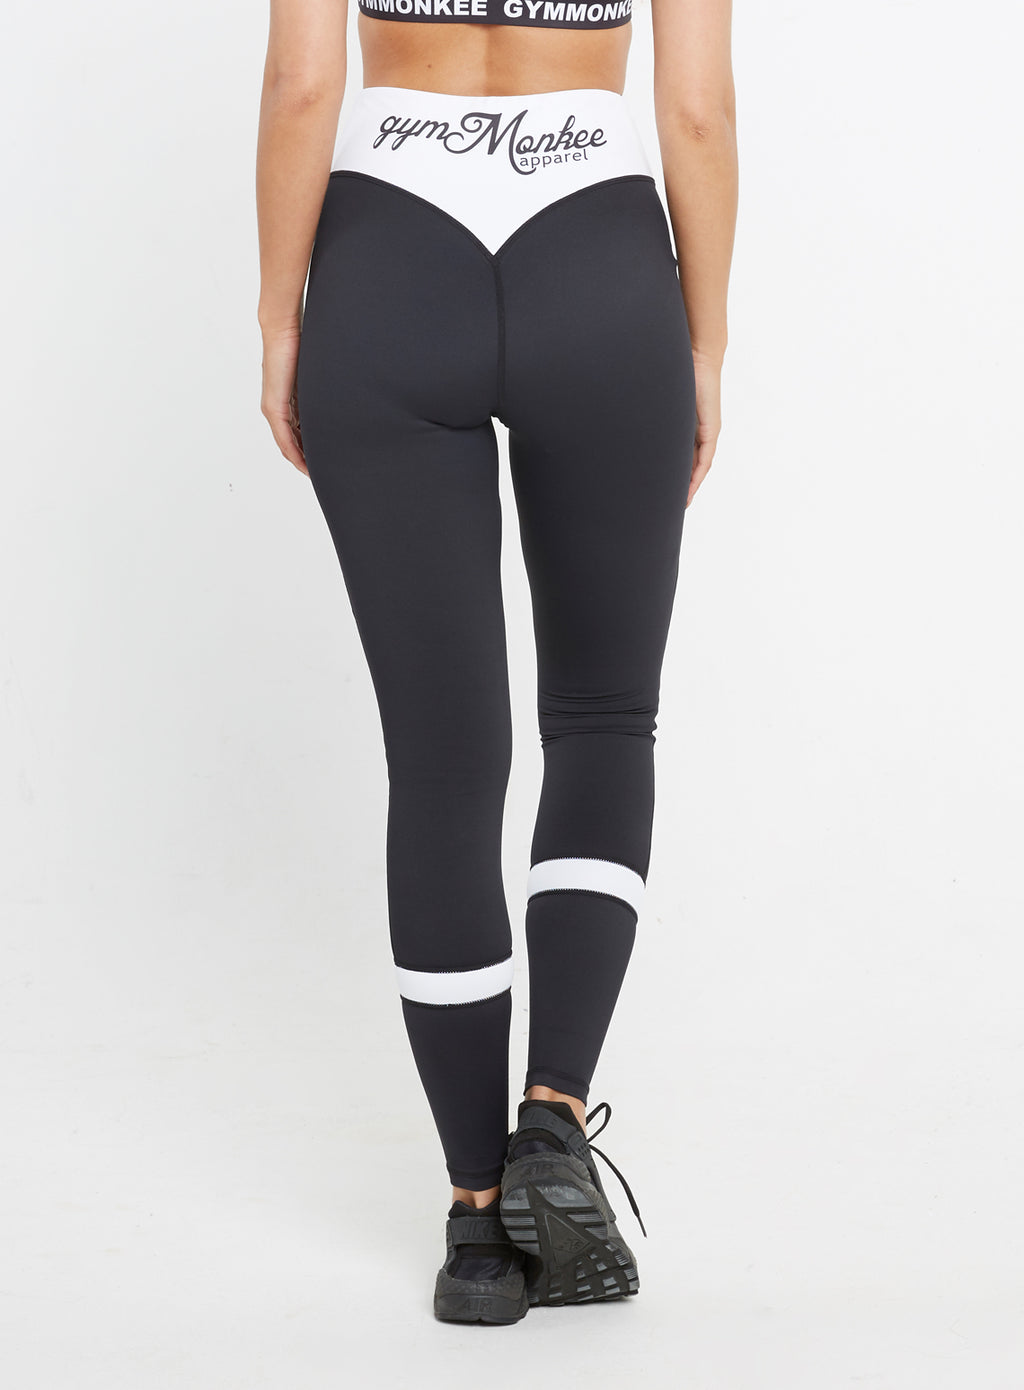 Gym  Monkee - Ladies Black and White Leggings REAR